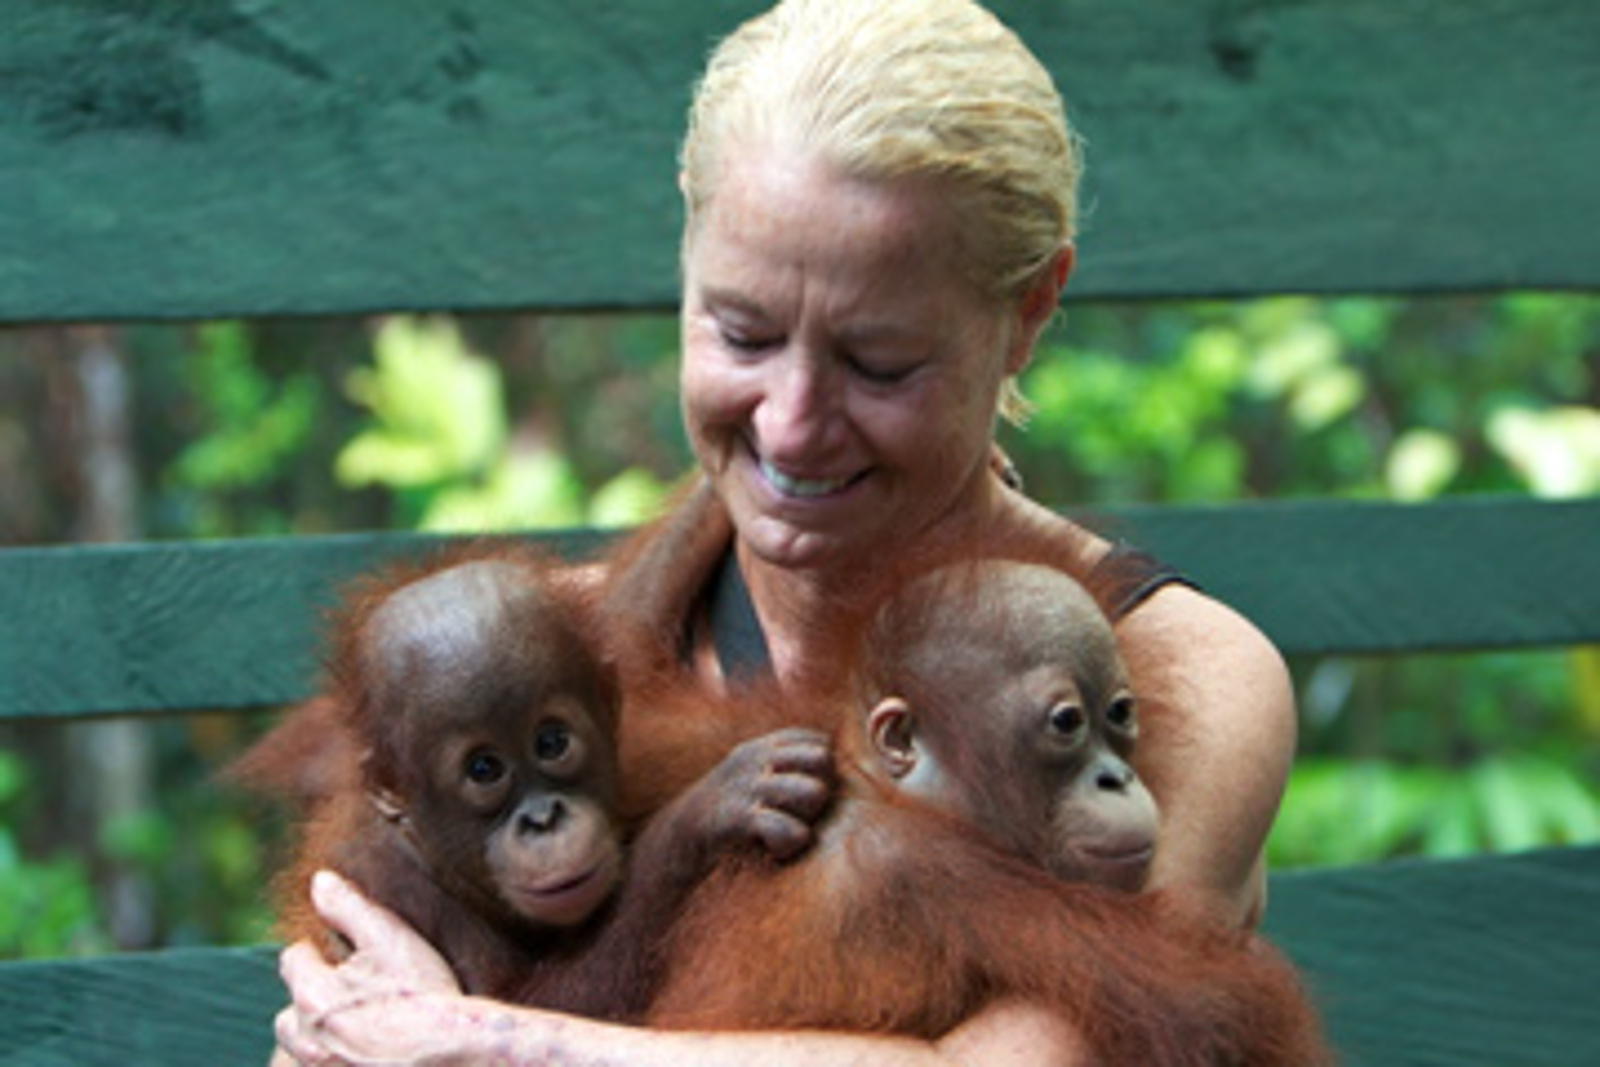 Call for Conservation: What I Learned From Visiting Borneo's Orangutans